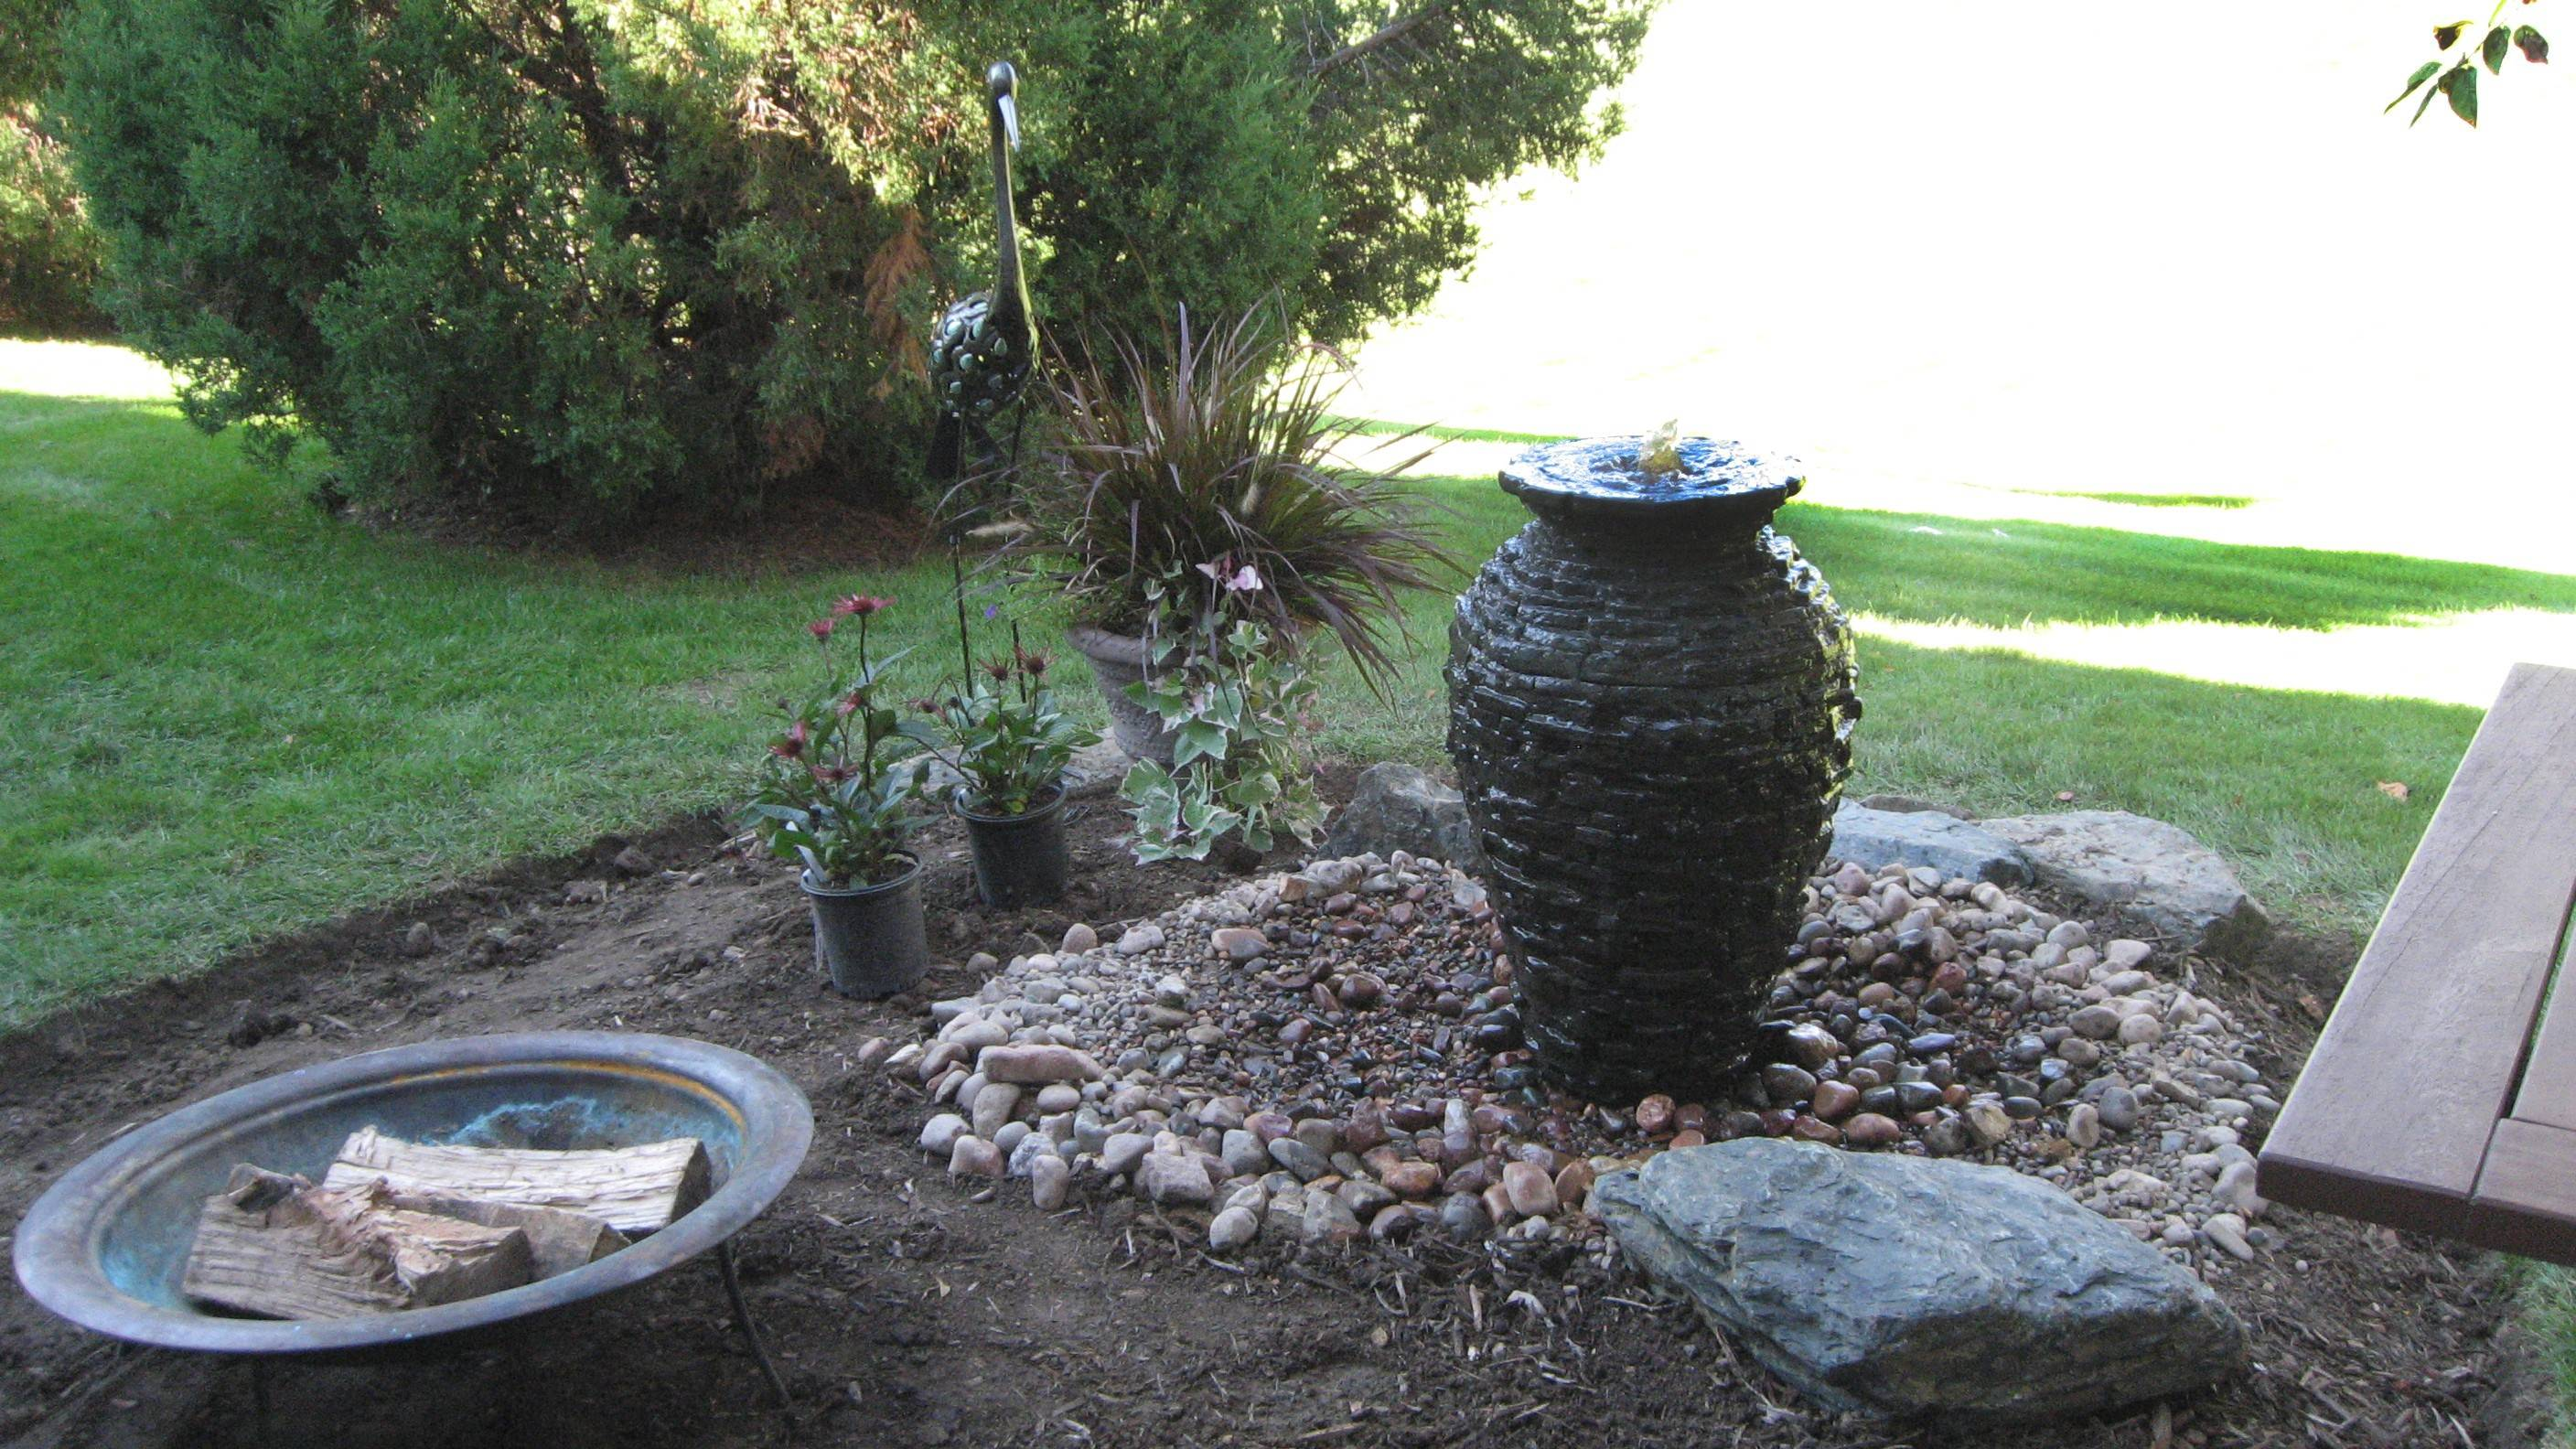 Cindy Parcher of East Dundee can relax on her patio with a bubbling urn water feature from Aquascape Designs, lighting package from Northwest Lighting and Accents, a Solaire infrared grill, and goodies from GFS and Binny's.